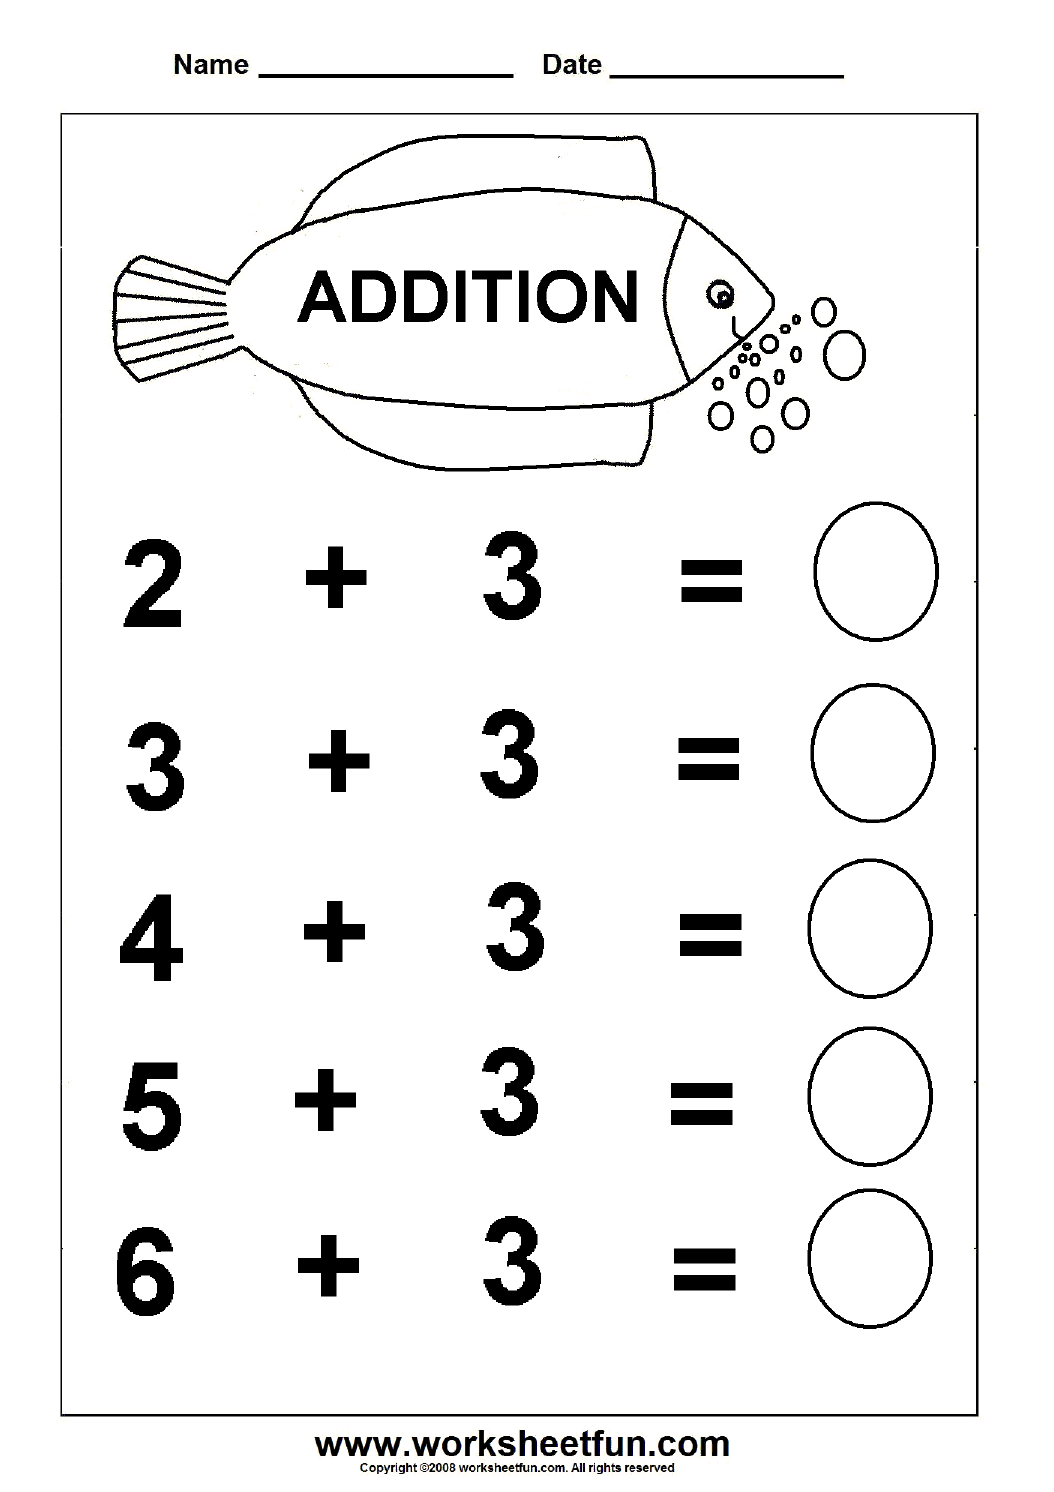 math worksheet : addition  6 worksheets  printable worksheets  pinterest  : Simple Addition Math Worksheets